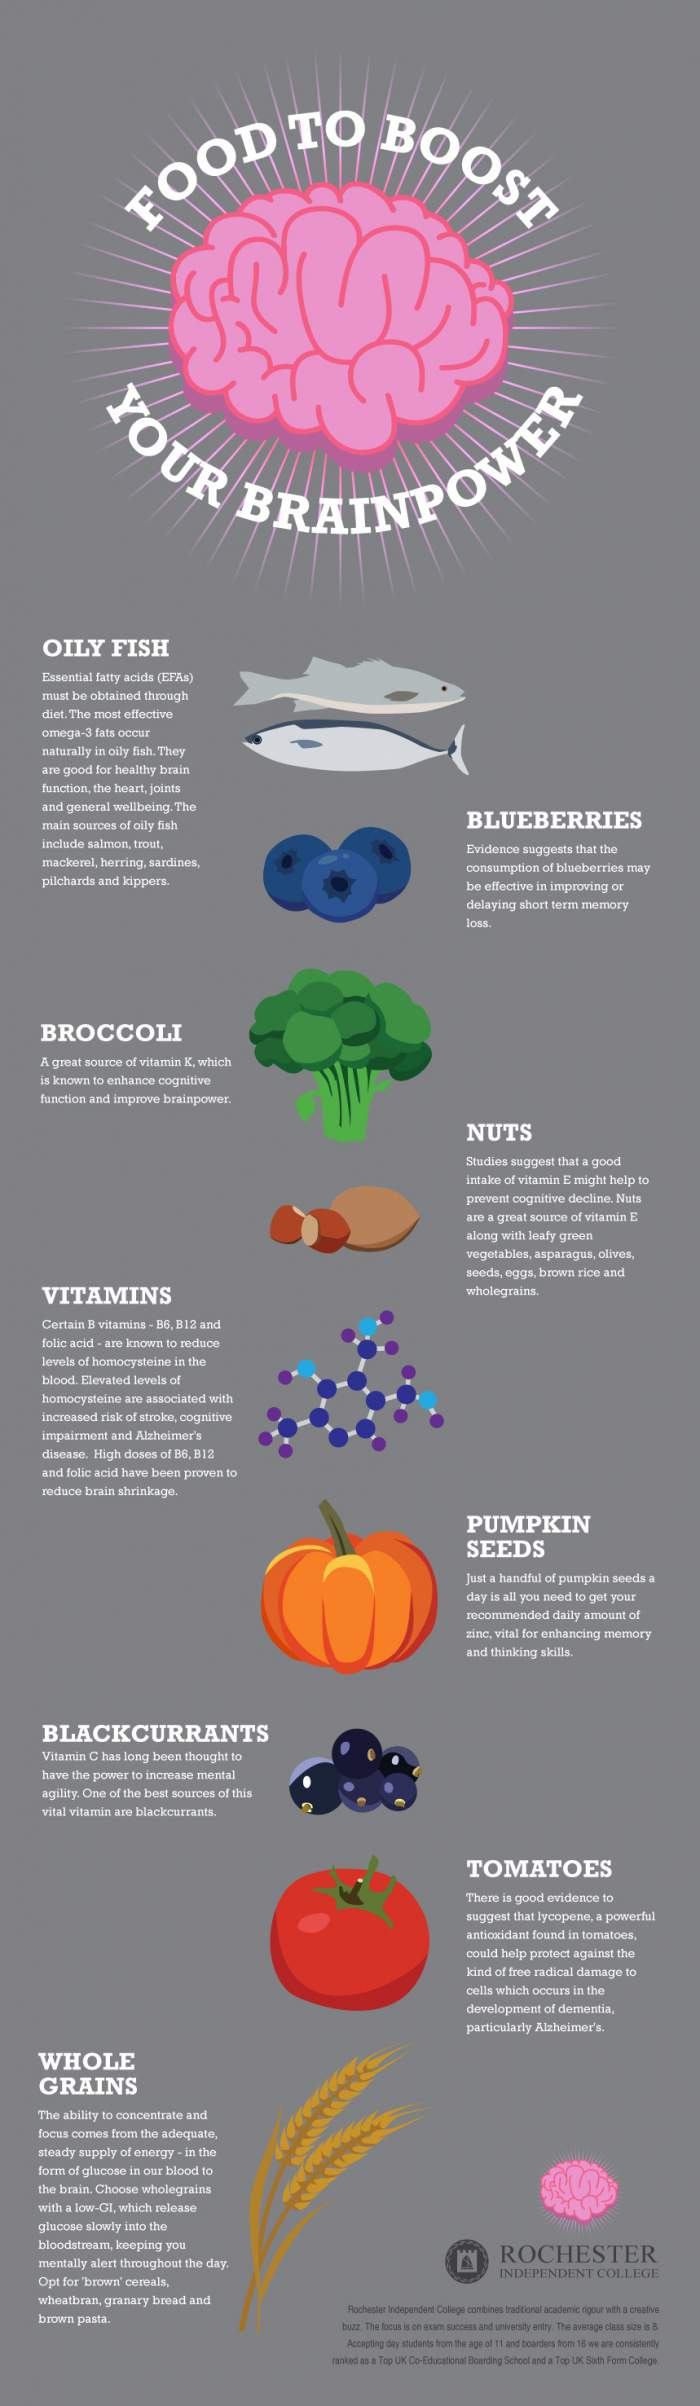 Natural supplements for brain power picture 2